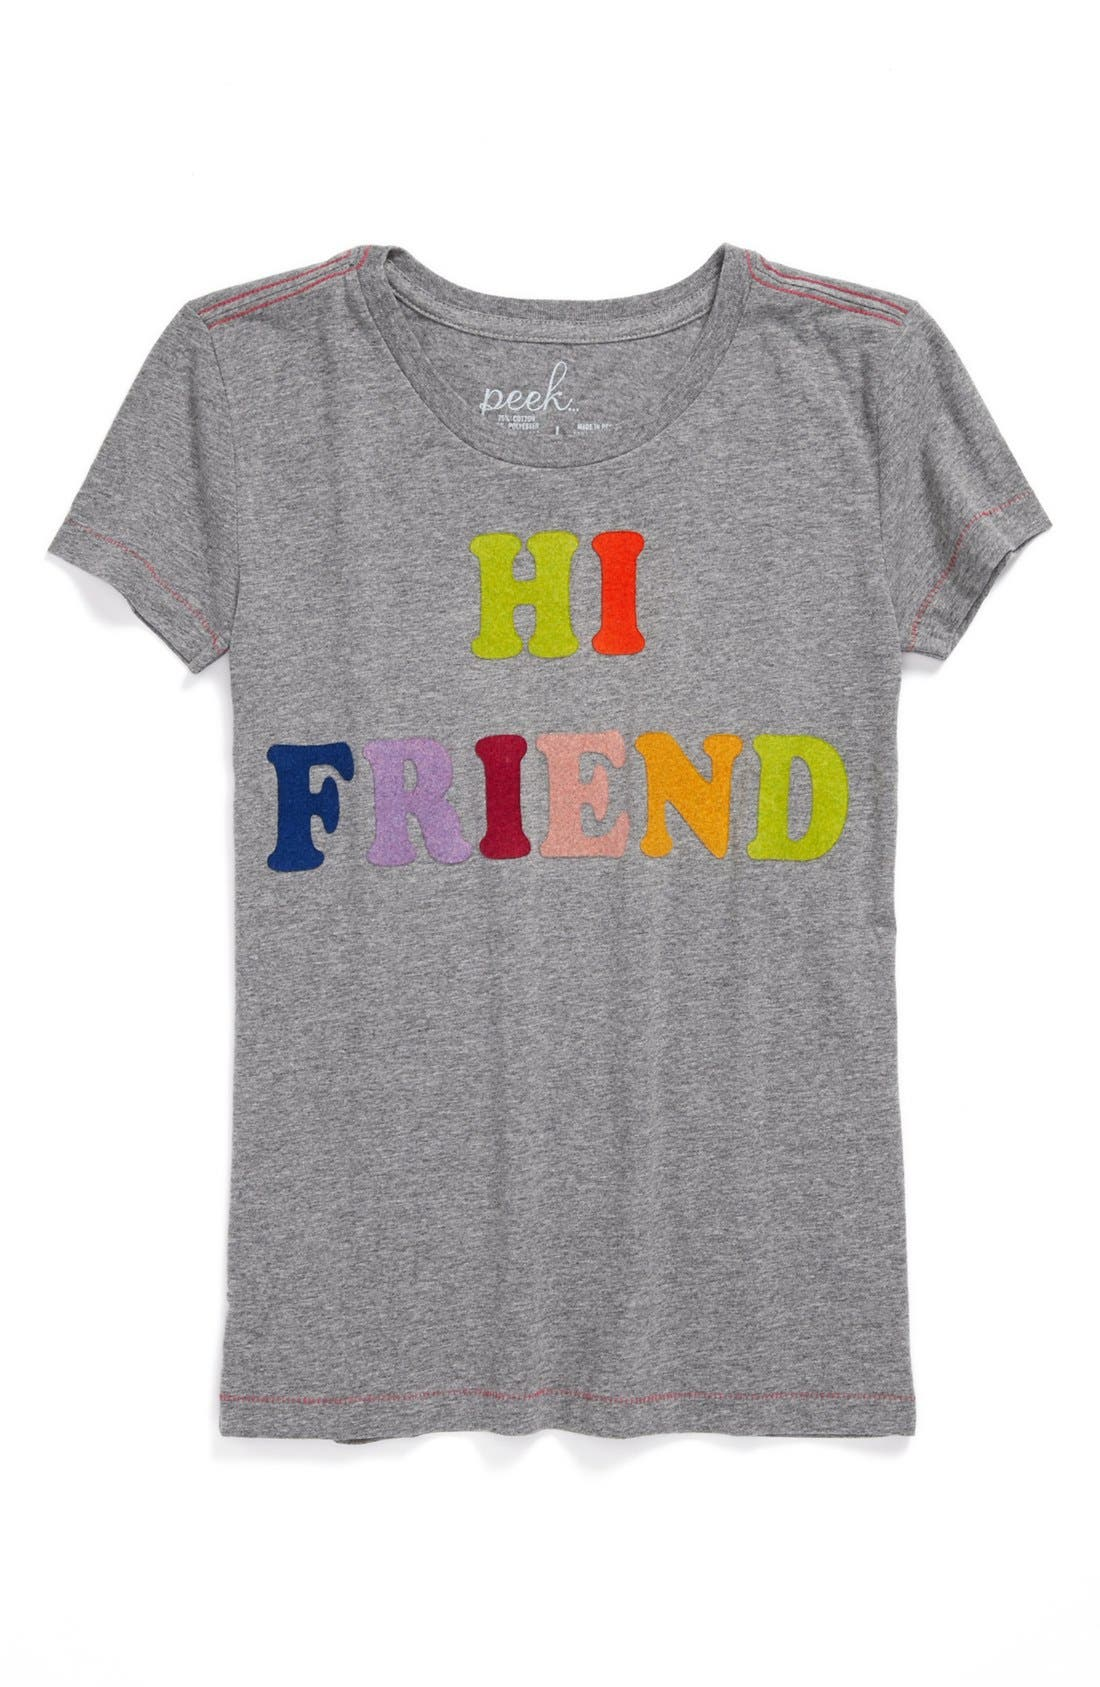 Main Image - Peek 'Hi Friend' Tee (Toddler Girls, Little Girls & Big Girls)